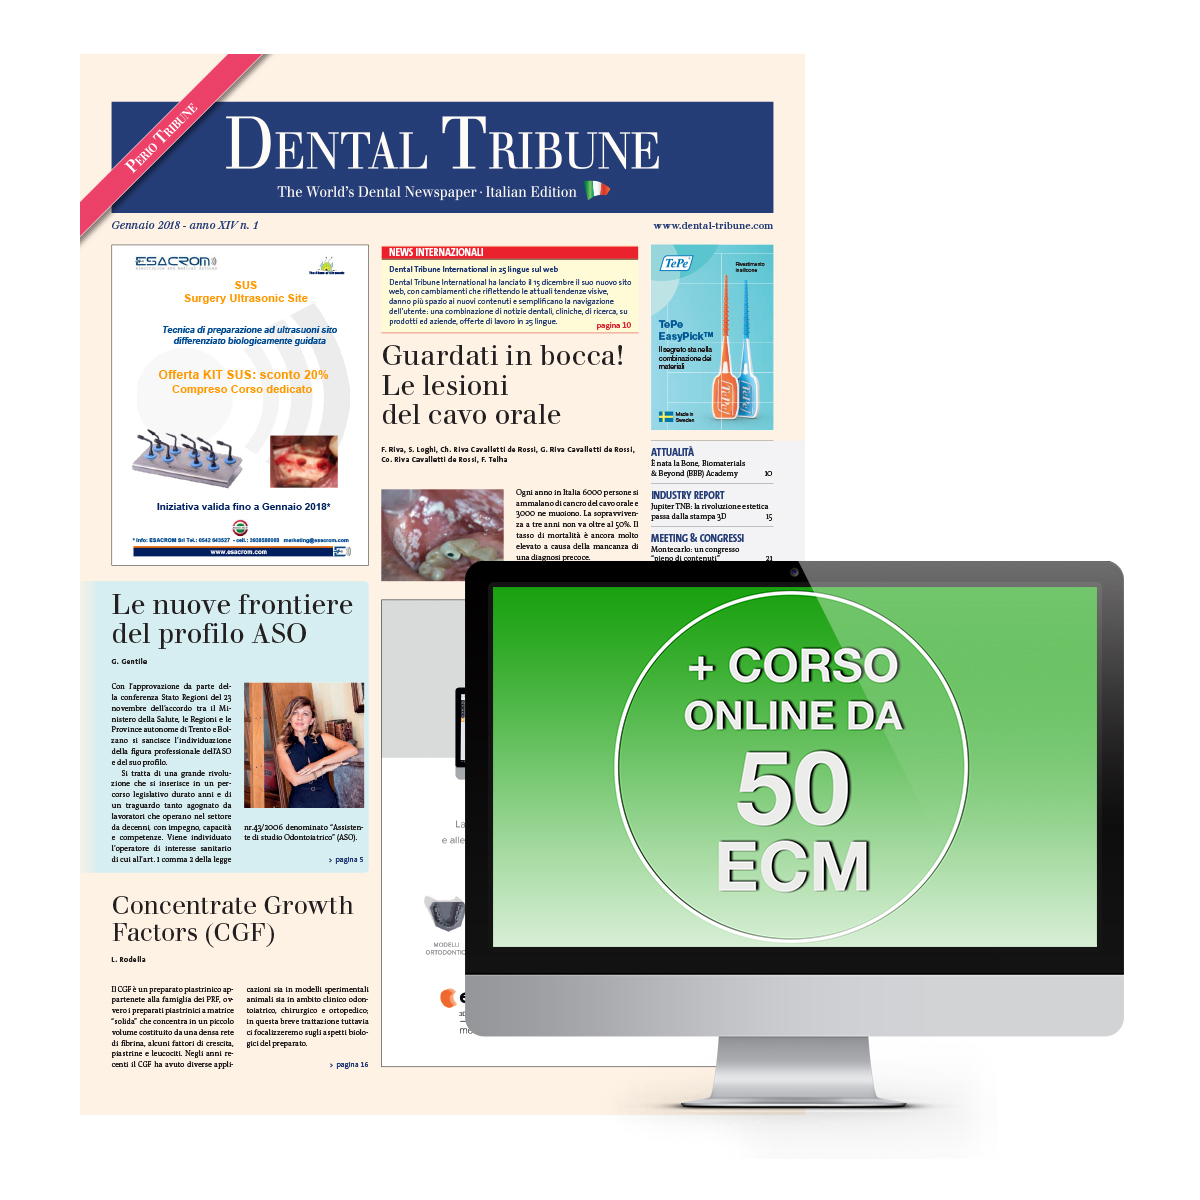 DENTAL TRIBUNE E CORSO FAD 50 ECM